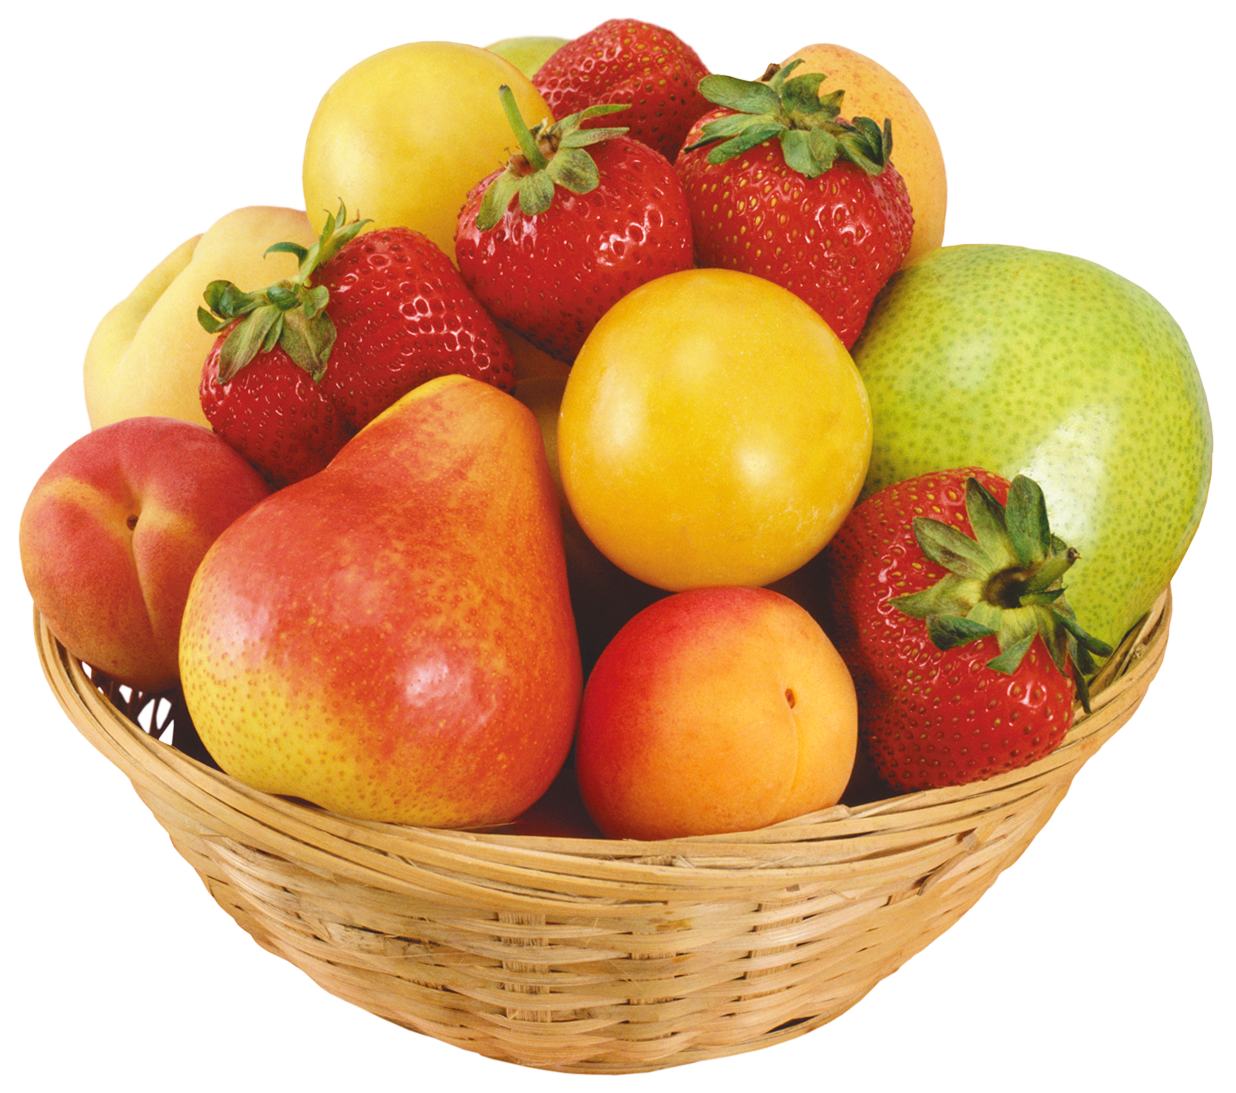 Bowl with money under it clipart graphic free download Fruits in Wicker Bowl PNG Clipart - Best WEB Clipart graphic free download